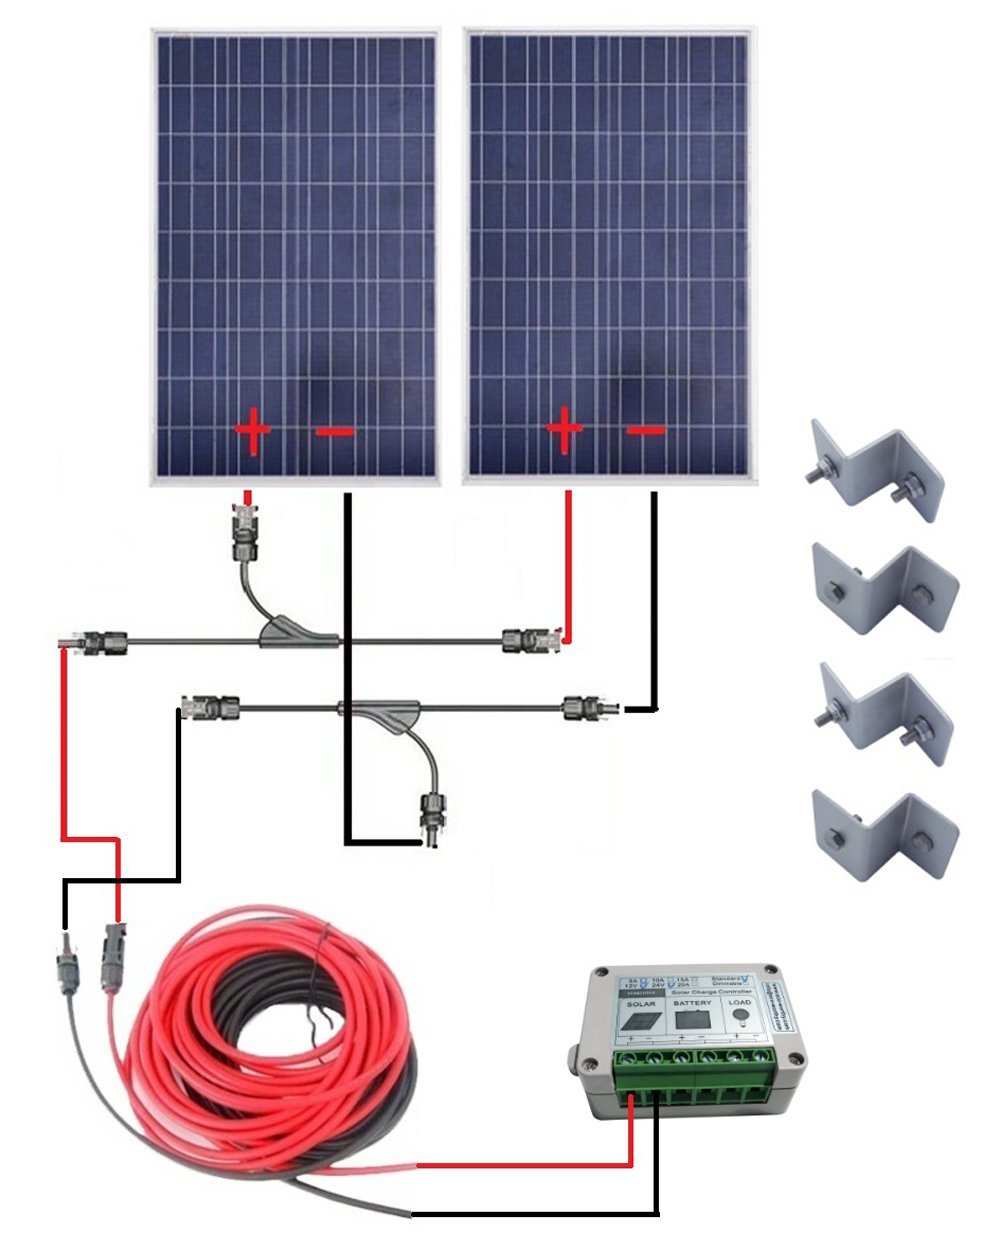 DE stock, 200w solar system for home no tax, COMPLETE KIT 200W Solar Panel cells off grid system, * solar panel 12v 60w paniel solar 18v off grid home system car caravan camping motorhome fishing solar energy board boat marine